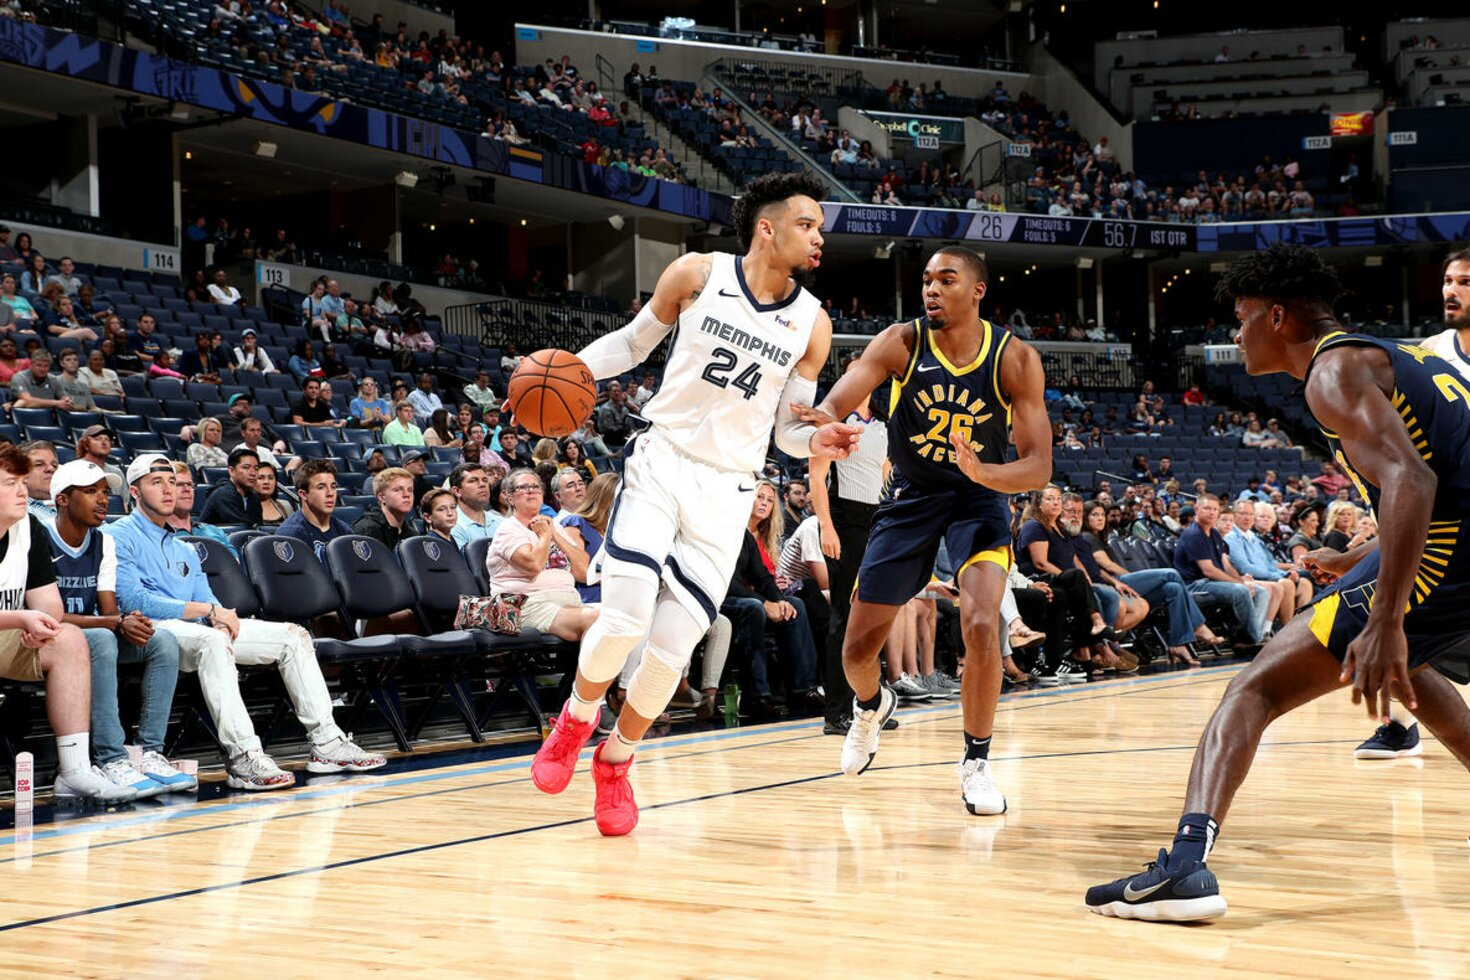 MEMPHIS, TN - OCTOBER 6: Dillon Brooks #24 of the Memphis Grizzlies handles the ball against the Indiana Pacers during a pre-season game on October 6, 2018 at FedExForum in Memphis, Tennessee.